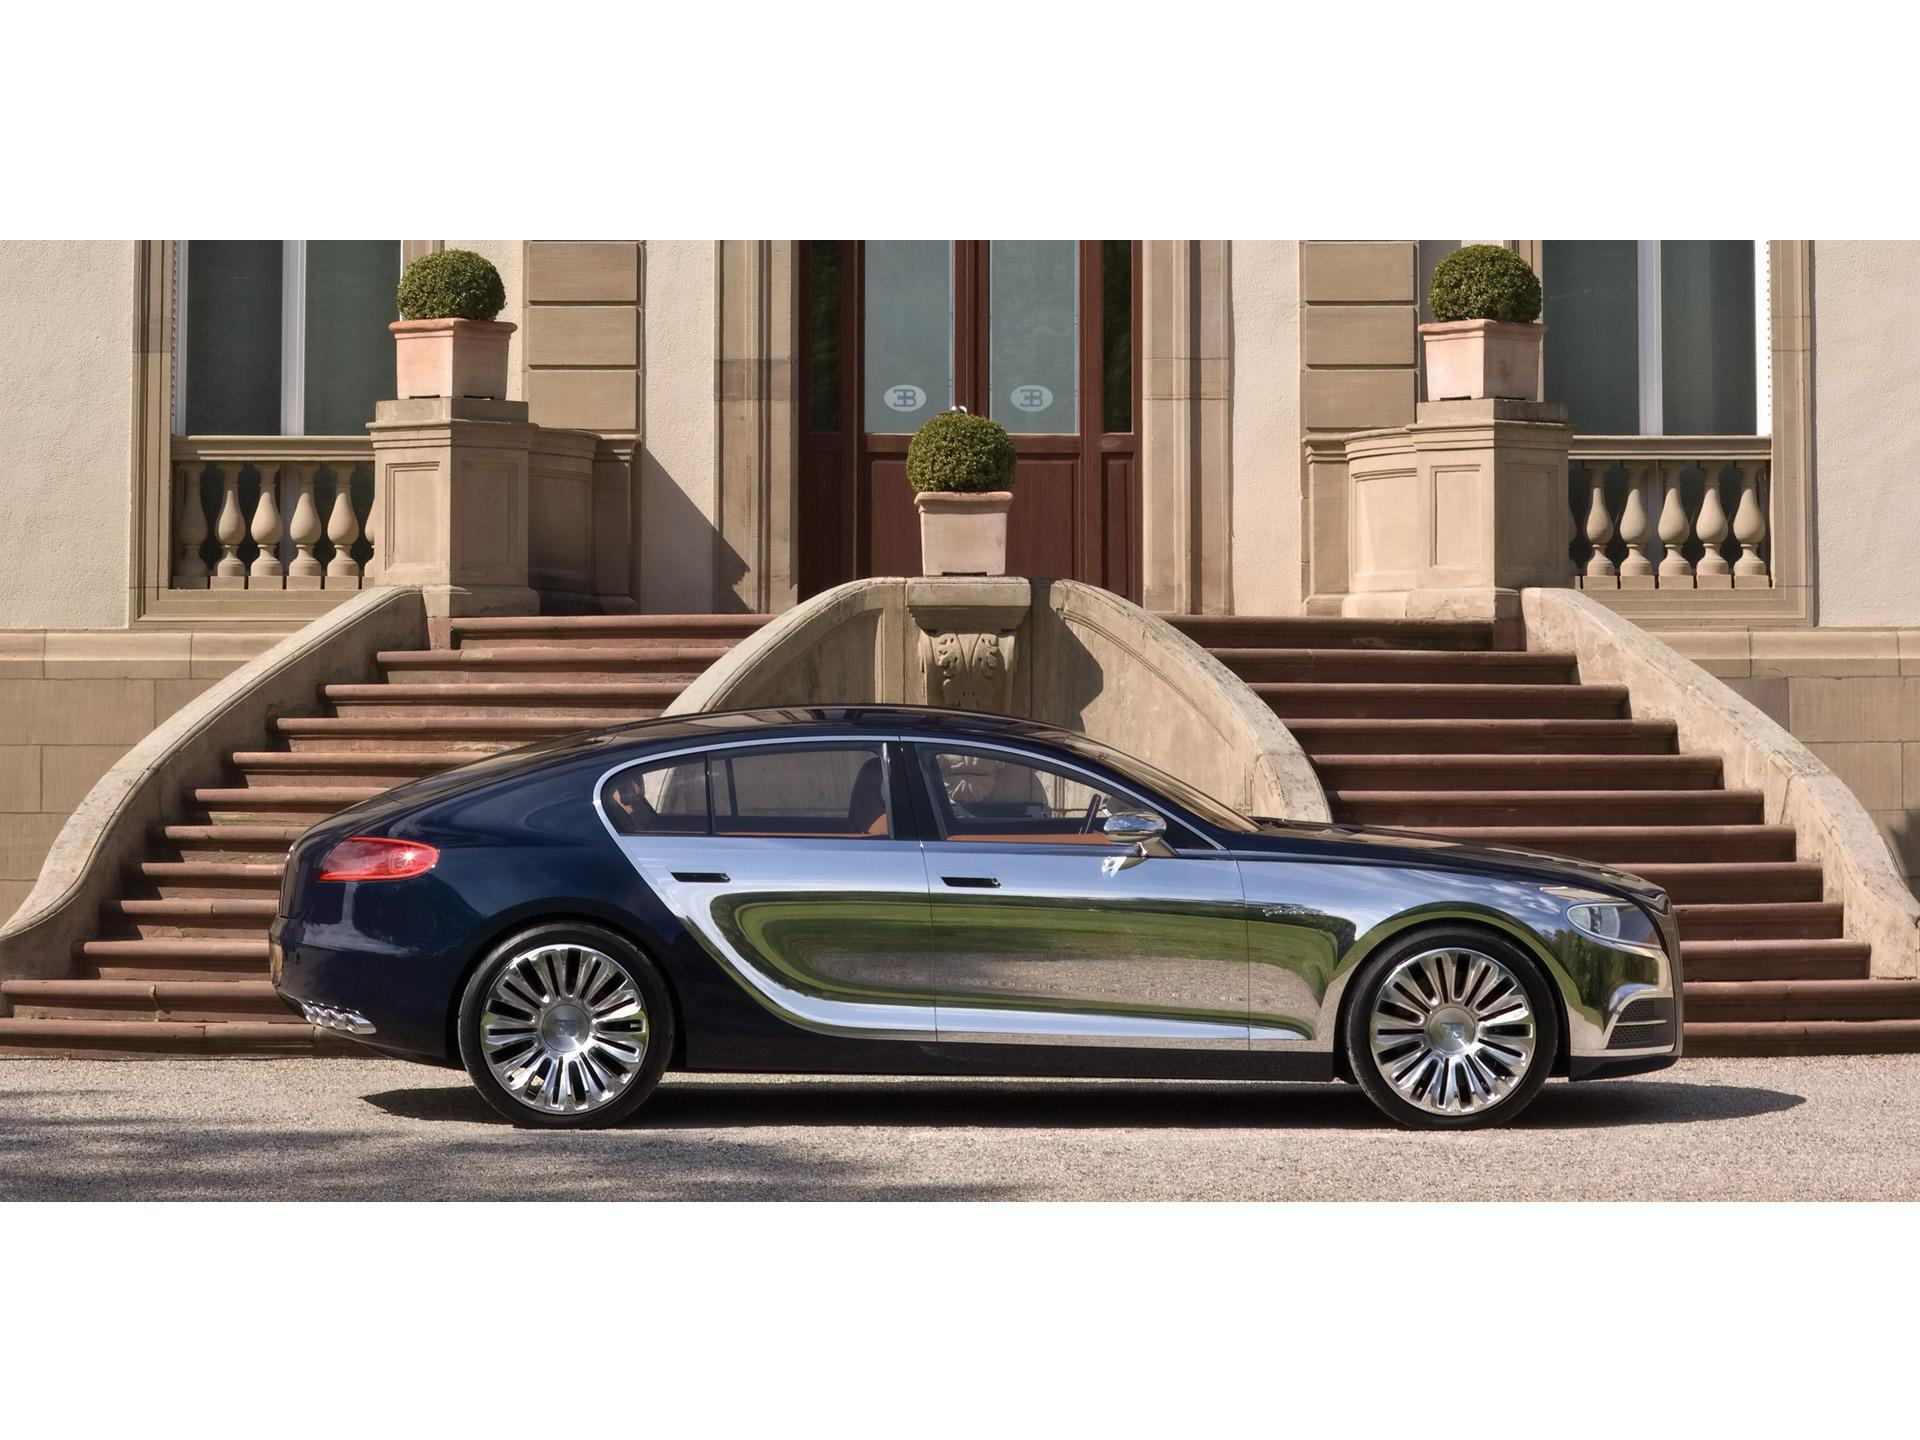 2010 bugatti 16 c galibier concept pictures news. Black Bedroom Furniture Sets. Home Design Ideas